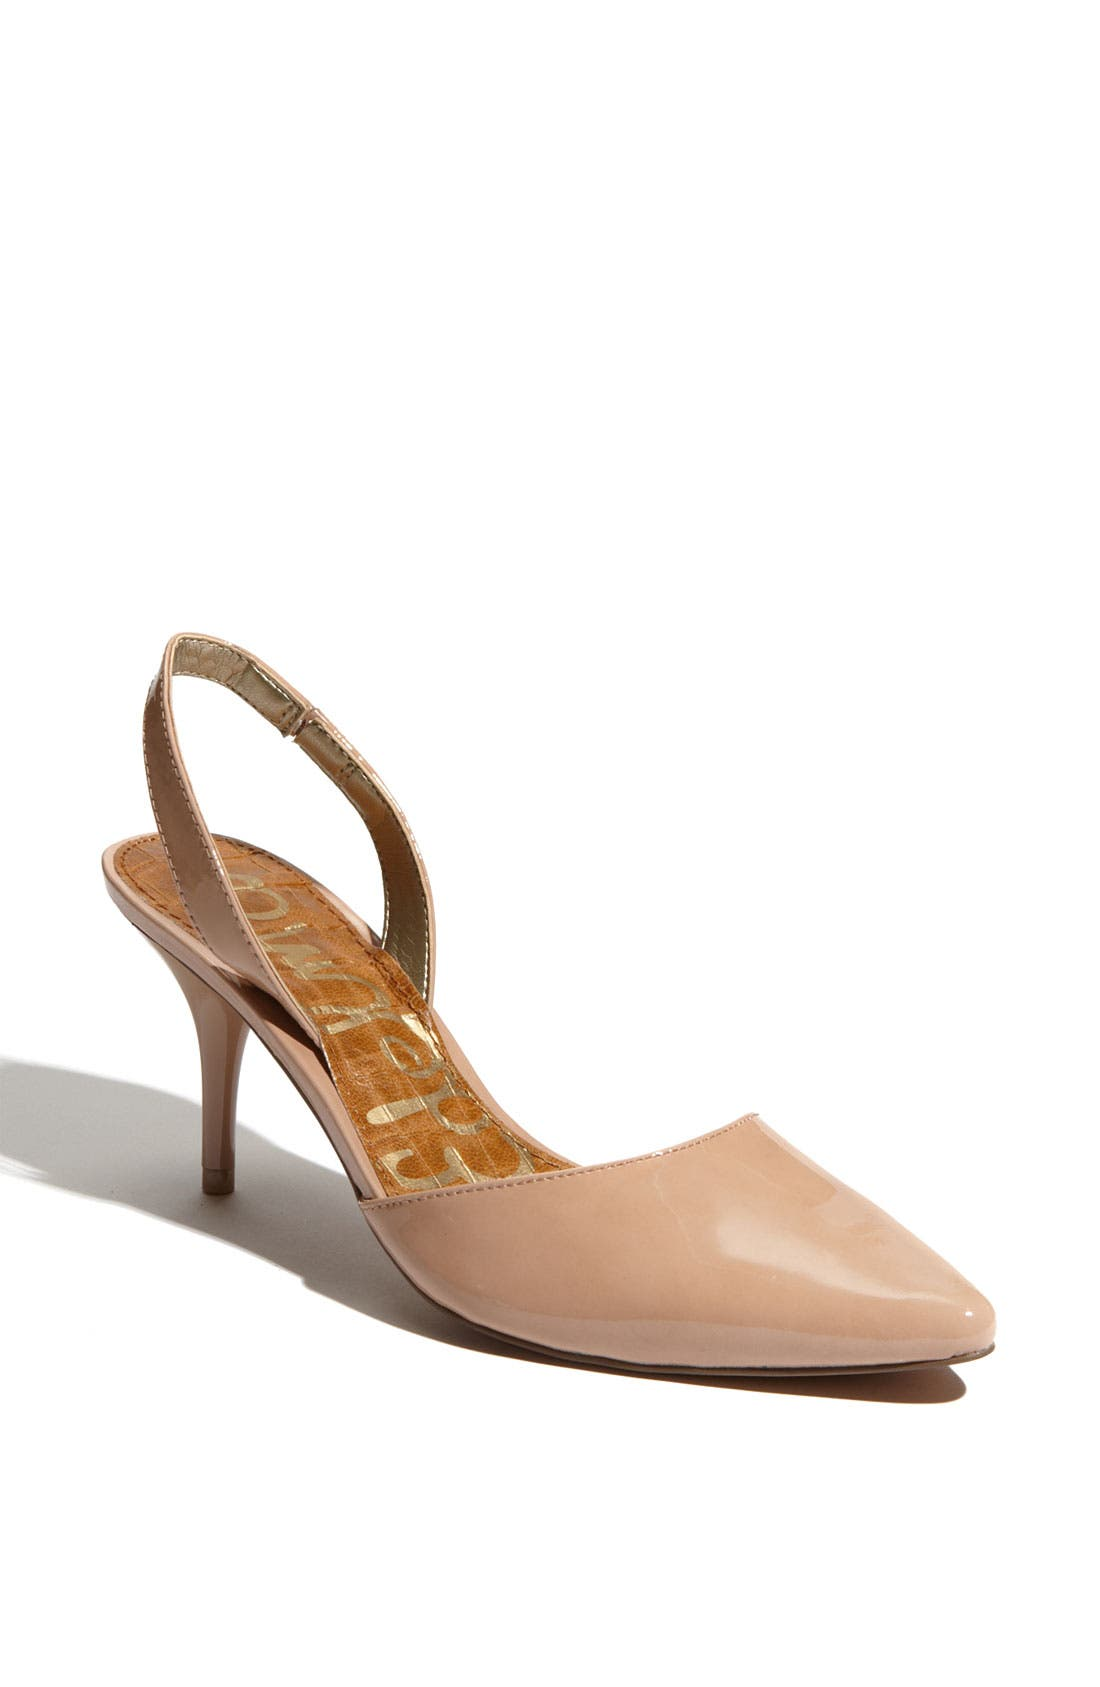 Alternate Image 1 Selected - Sam Edelman 'Orly' Slingback Pump